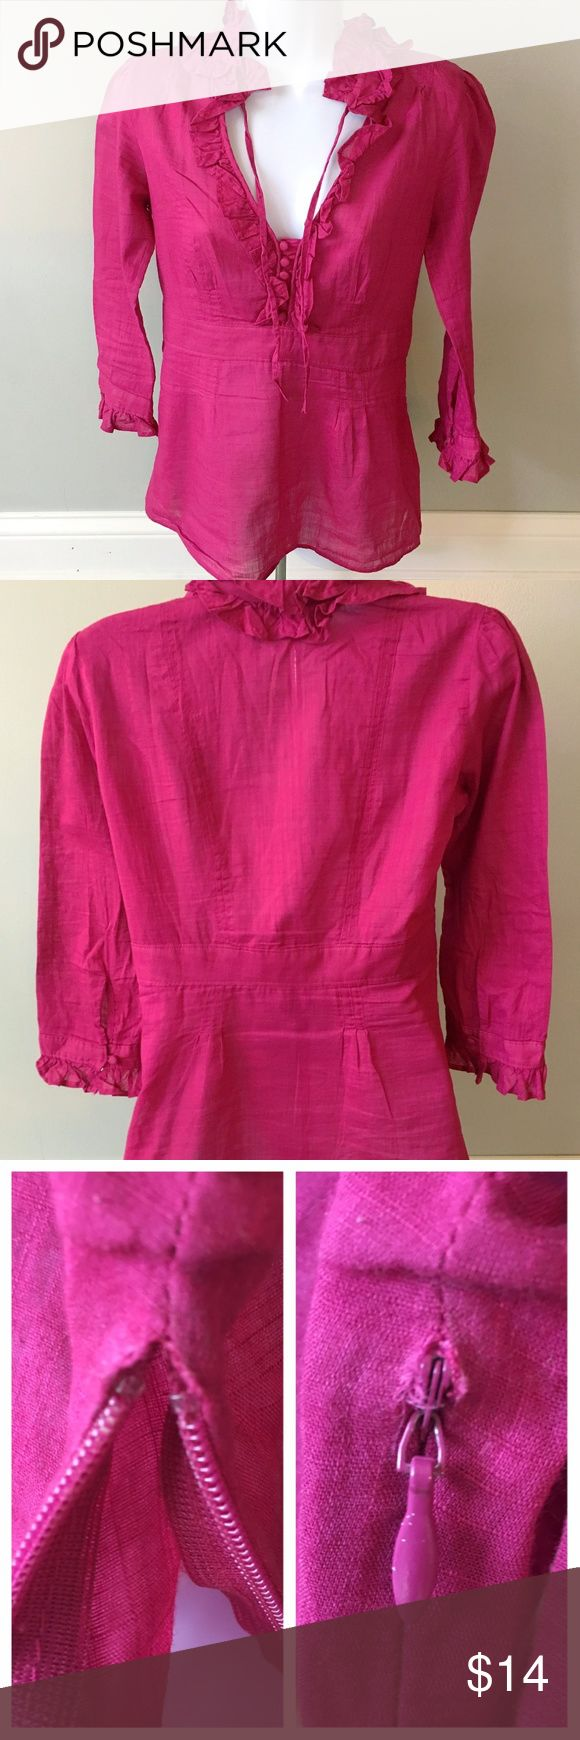 JCrew Size 2 XS EUC Fuchsia Pink Linen Ruffle Top J. Crew 3/4 sleeve fuchsia / hot pink linen ruffle top! Side zipper for easy in/out. Classic J. Crew texture: ruffles, mini buttons, tie.  Outfit ideas: skinnies & flats, bright contrasting pencil skirt (neon yellow works great!) w/heels, layered under a blazer for work, or w/cutoffs for the summer.  Condition: 9/10. Barely visible fray at zipper top under left armpit (pictured). No stains, fading, pilling, holes, rips, tears, or loose…